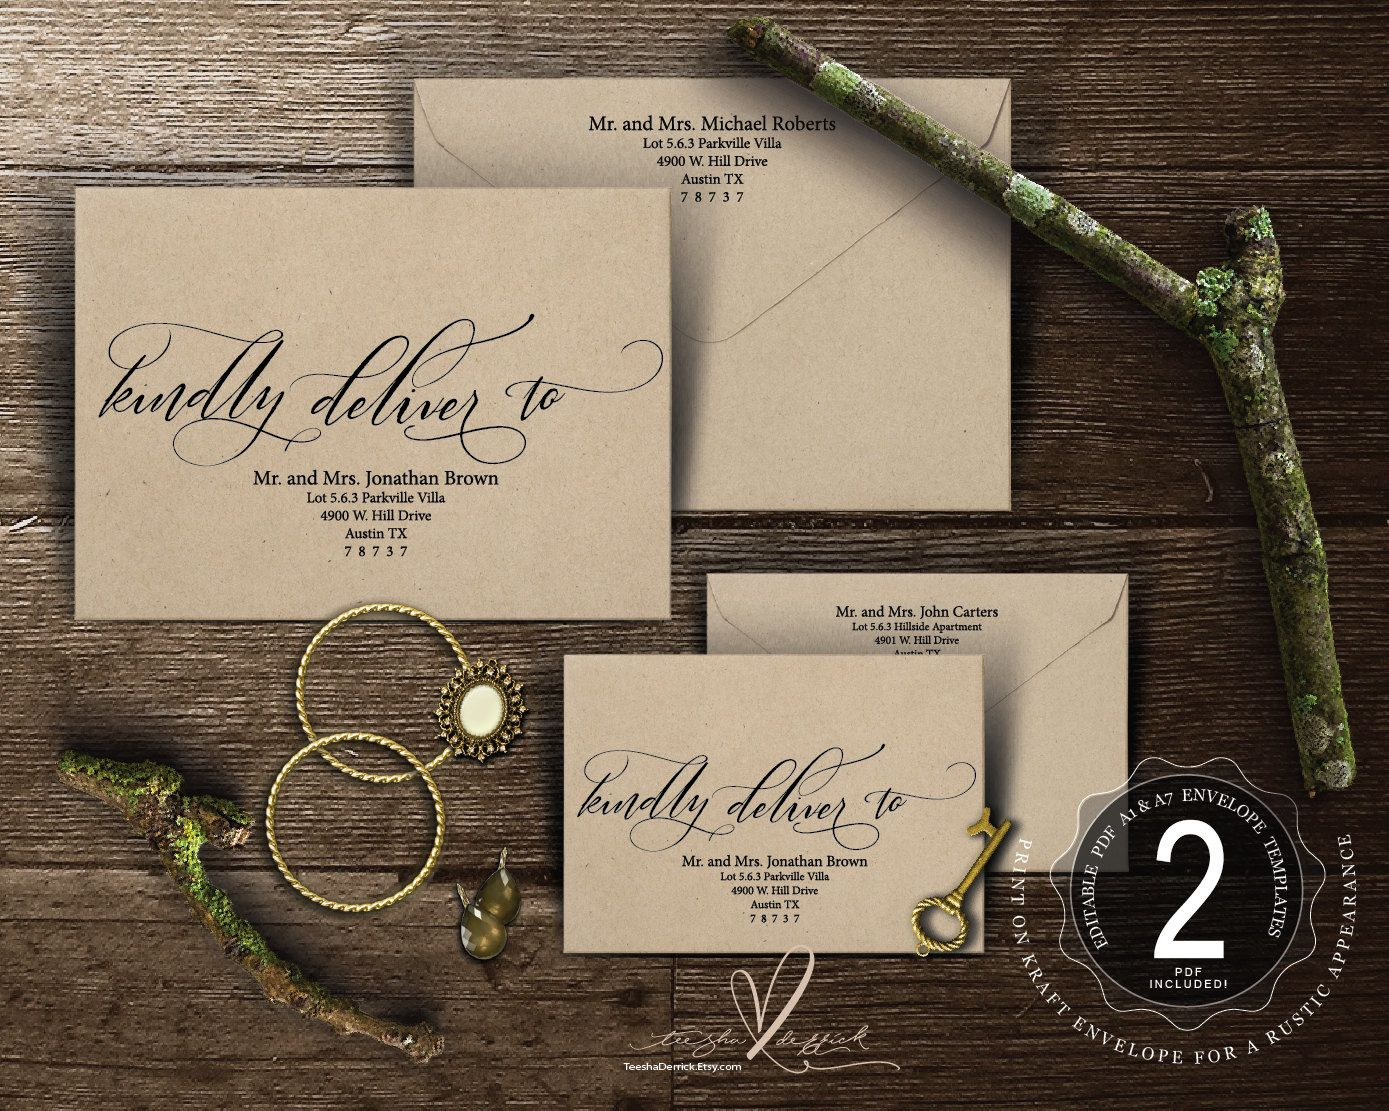 Editable envelope template kindly deliver to instant download pdf editable envelope template kindly deliver to instant download pdf kraft rustic calligraphy theme stopboris Choice Image